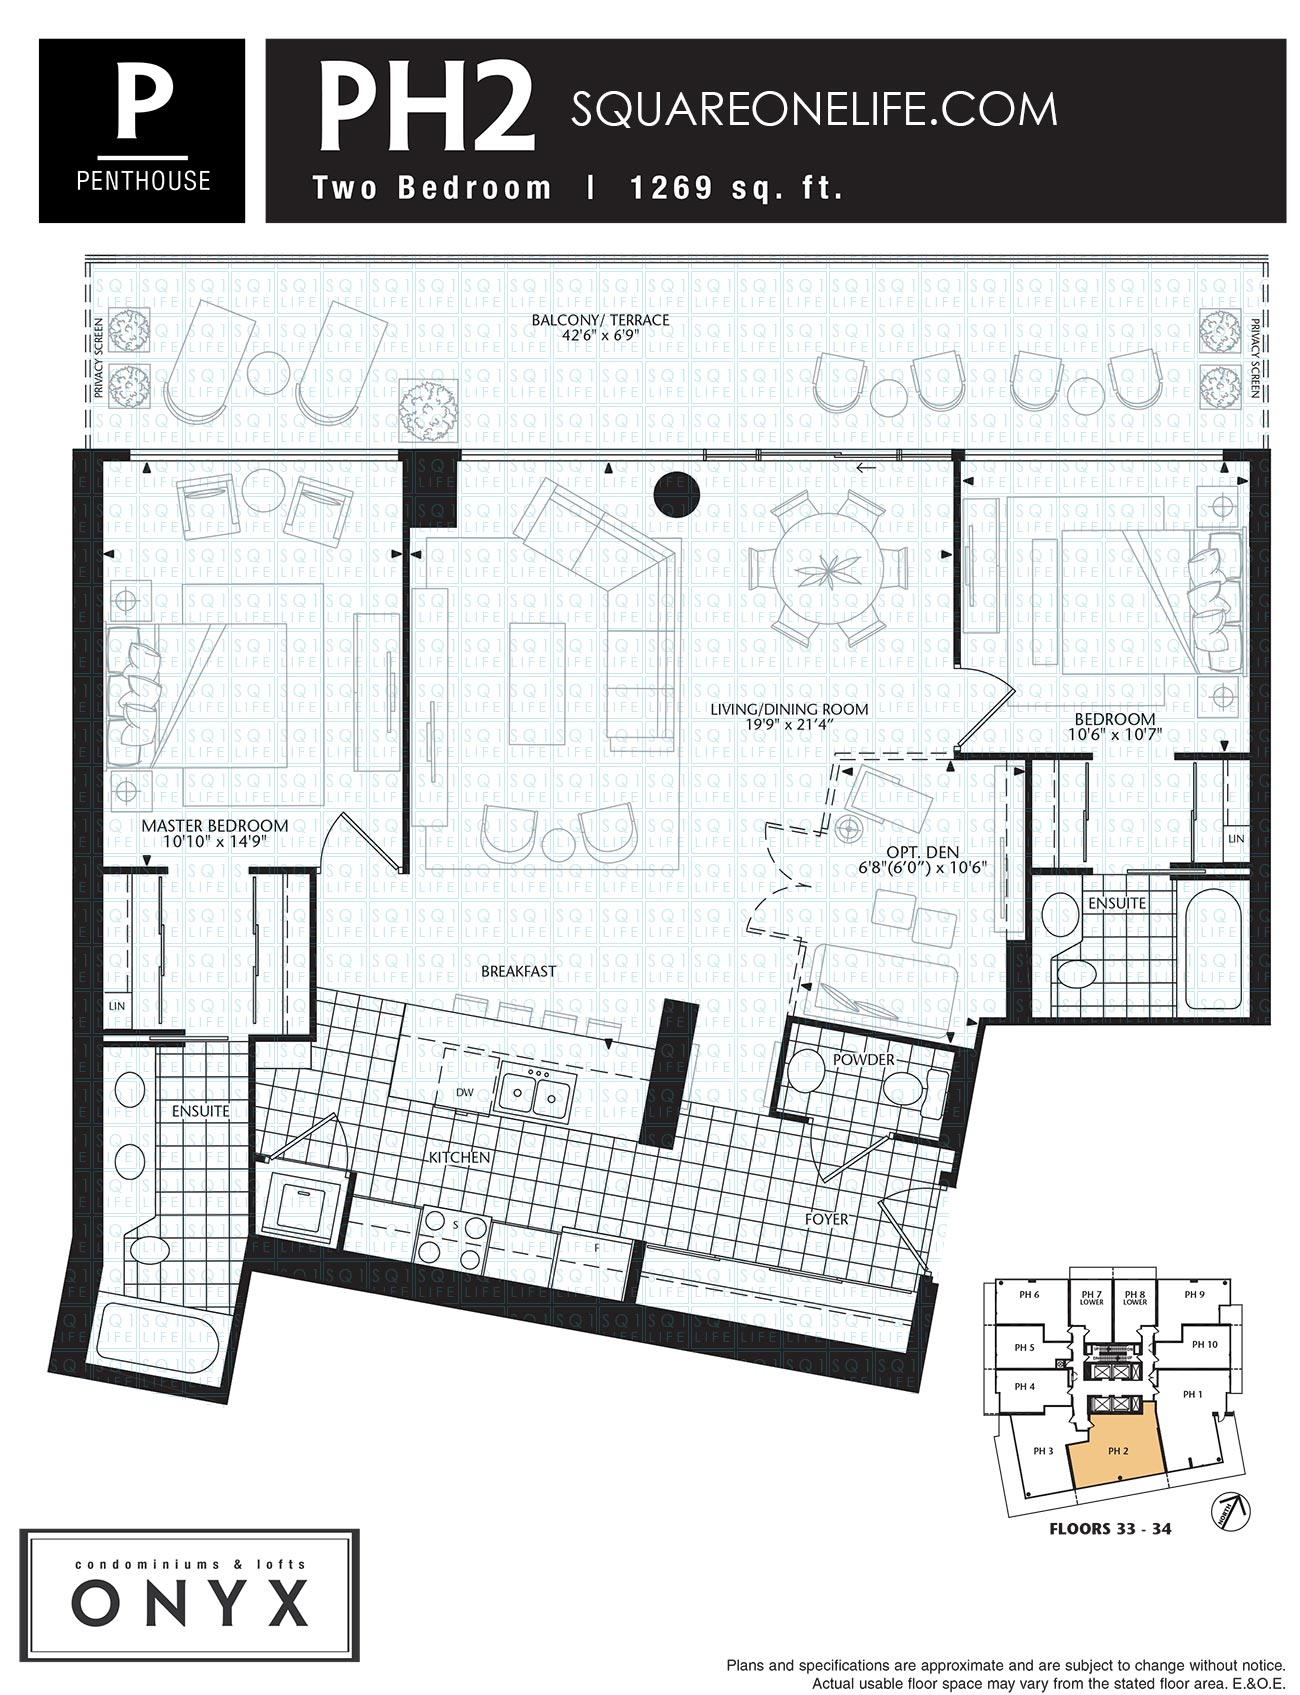 223-Webb-Dr-Onyx-Condo-Floorplan-PH2-2-Bed-1-Den onyx condo Onyx Condo 223 Webb Dr Onyx Condo Floorplan PH2 2 Bed 1 Den